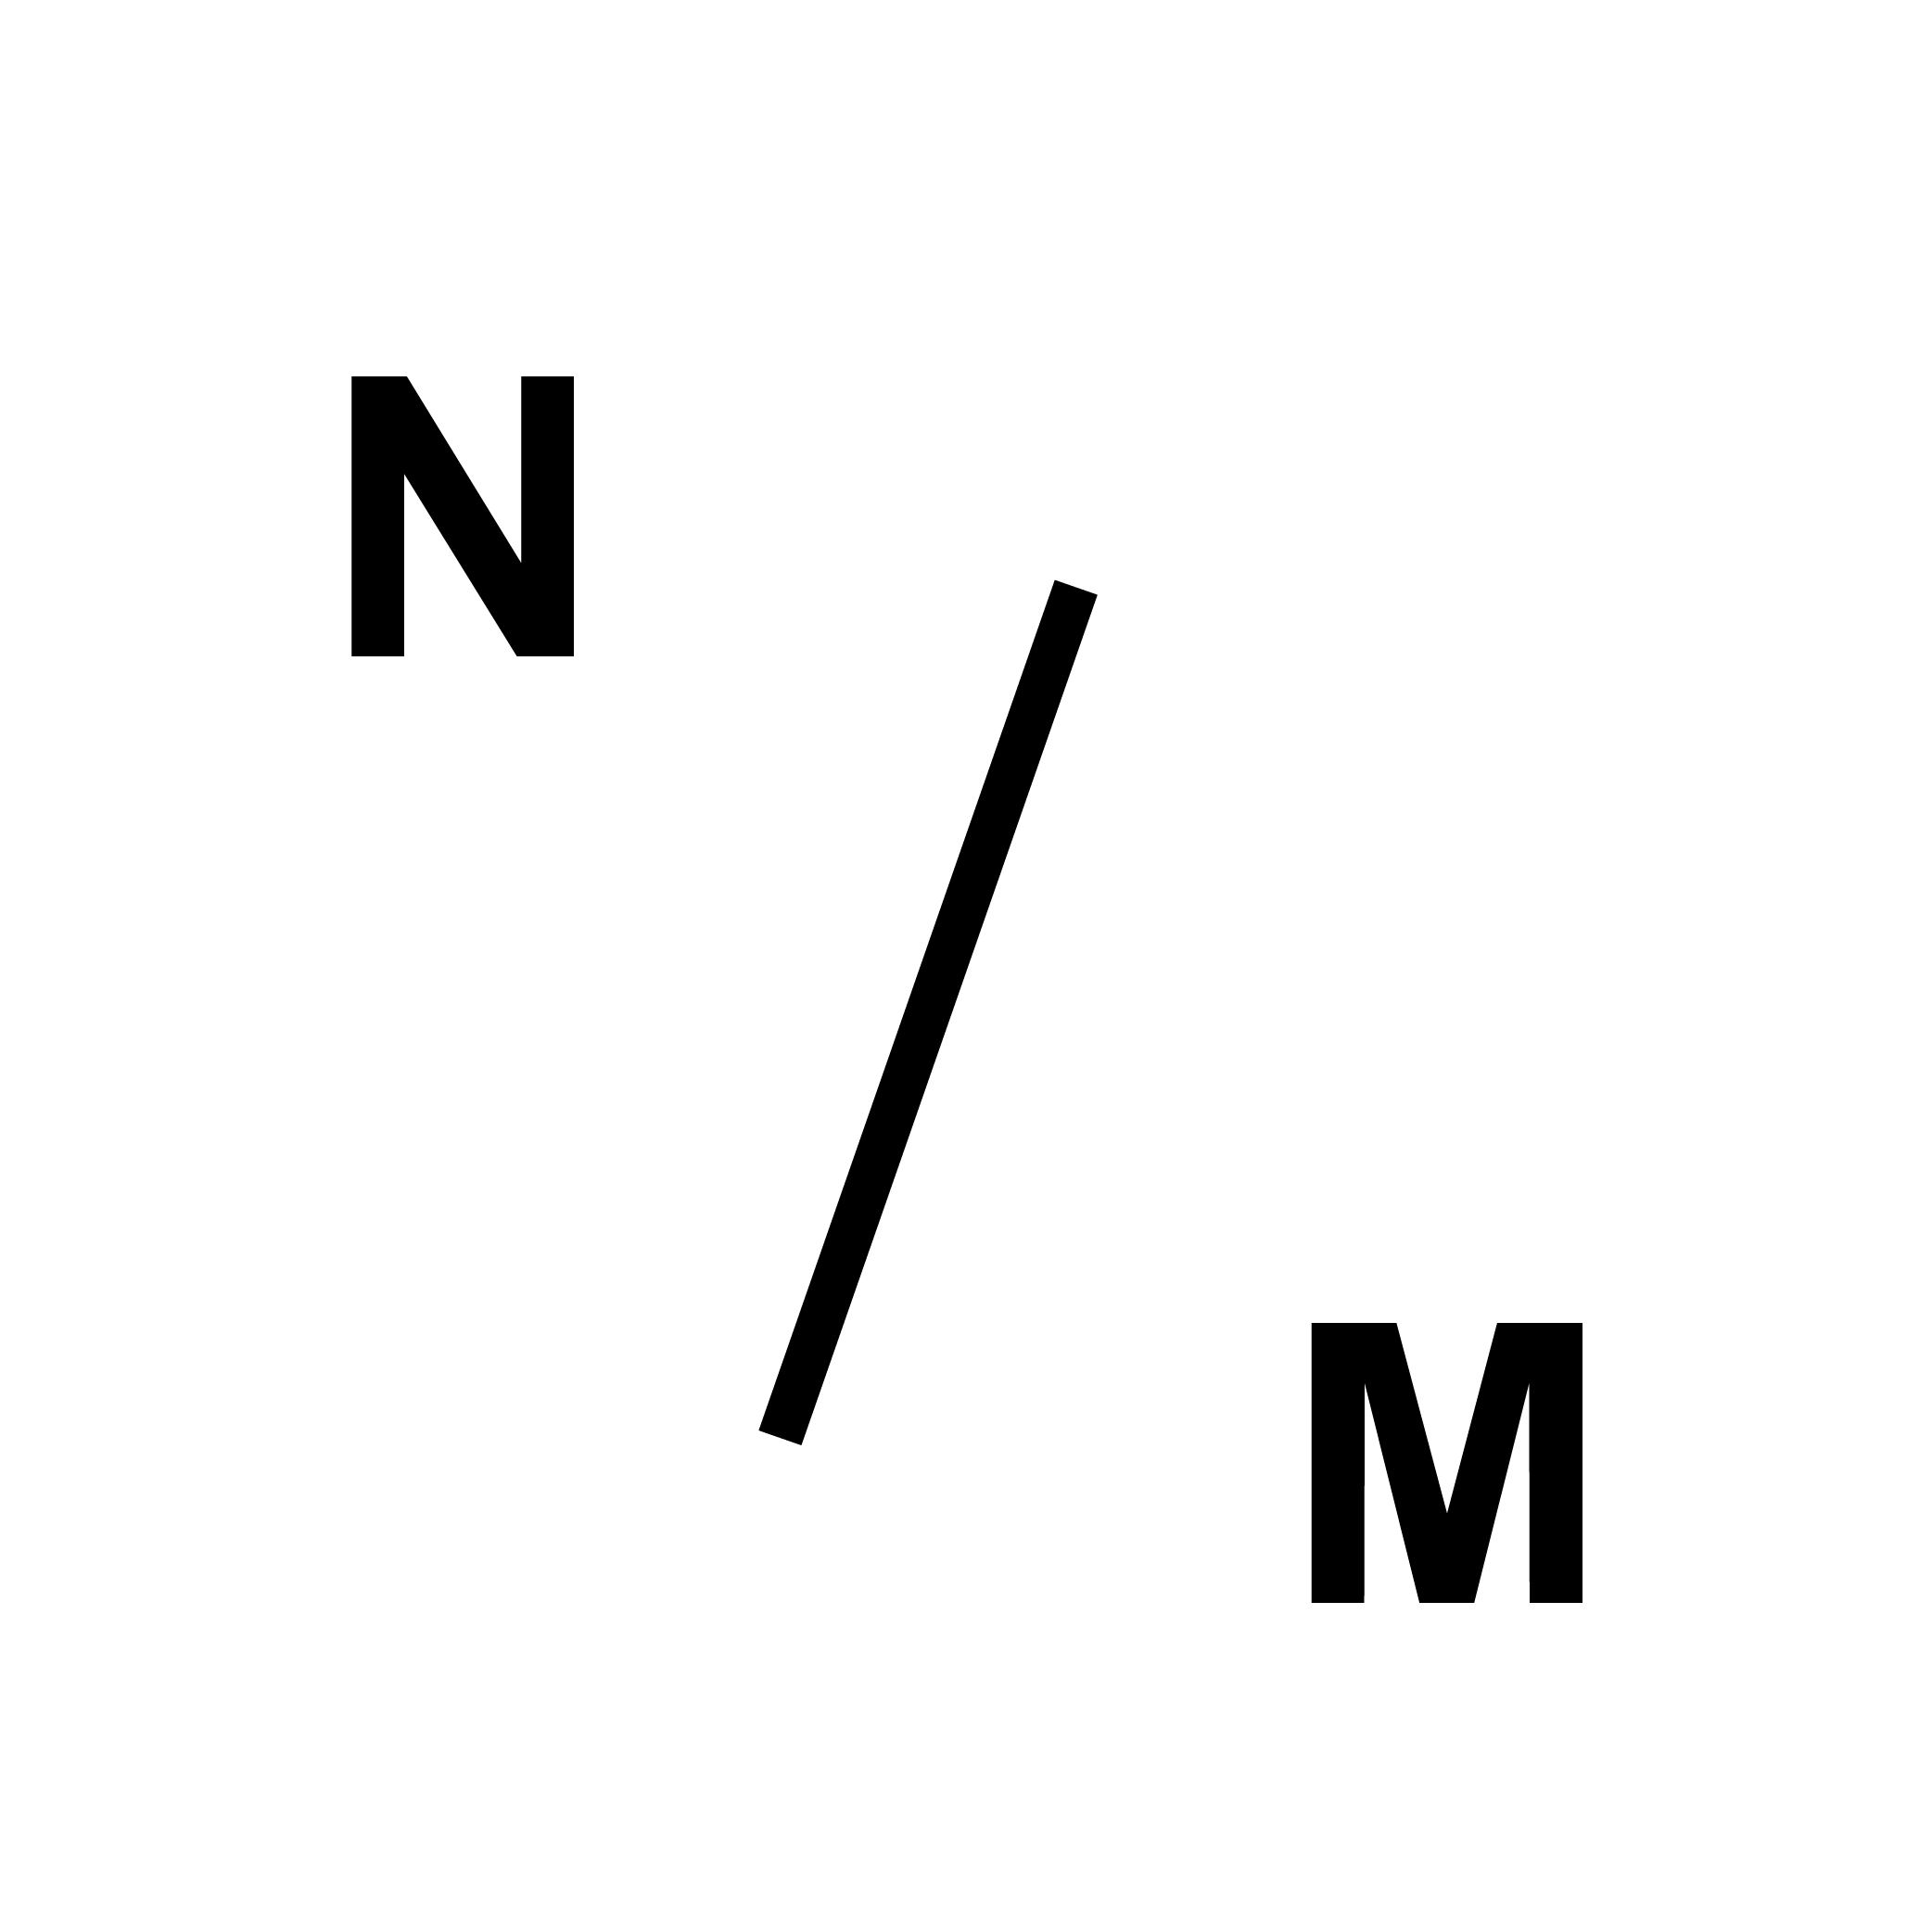 submark_1_small.png